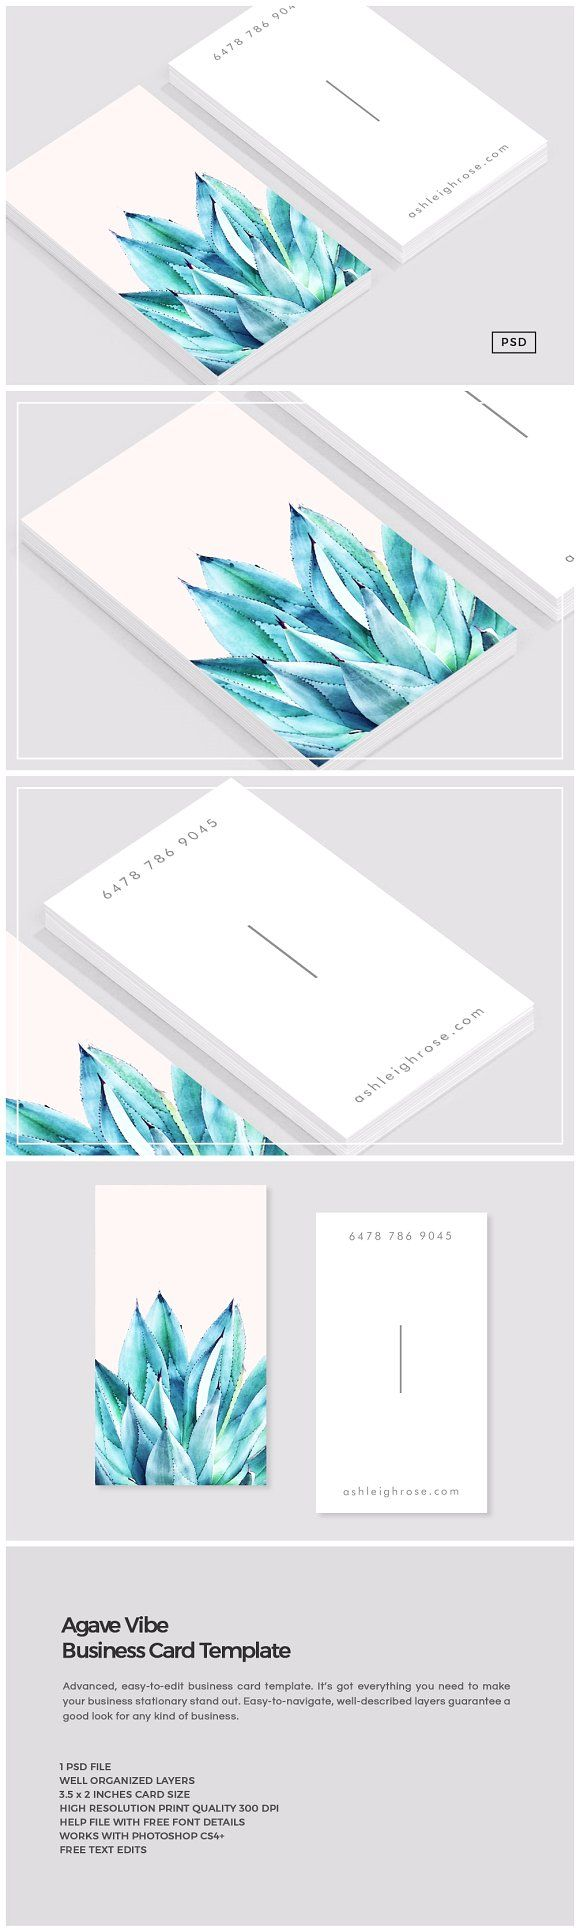 Agave vibe business card template pinterest cartes de visita agave vibe business card template by the design label on creativemarket business cards design free reheart Image collections